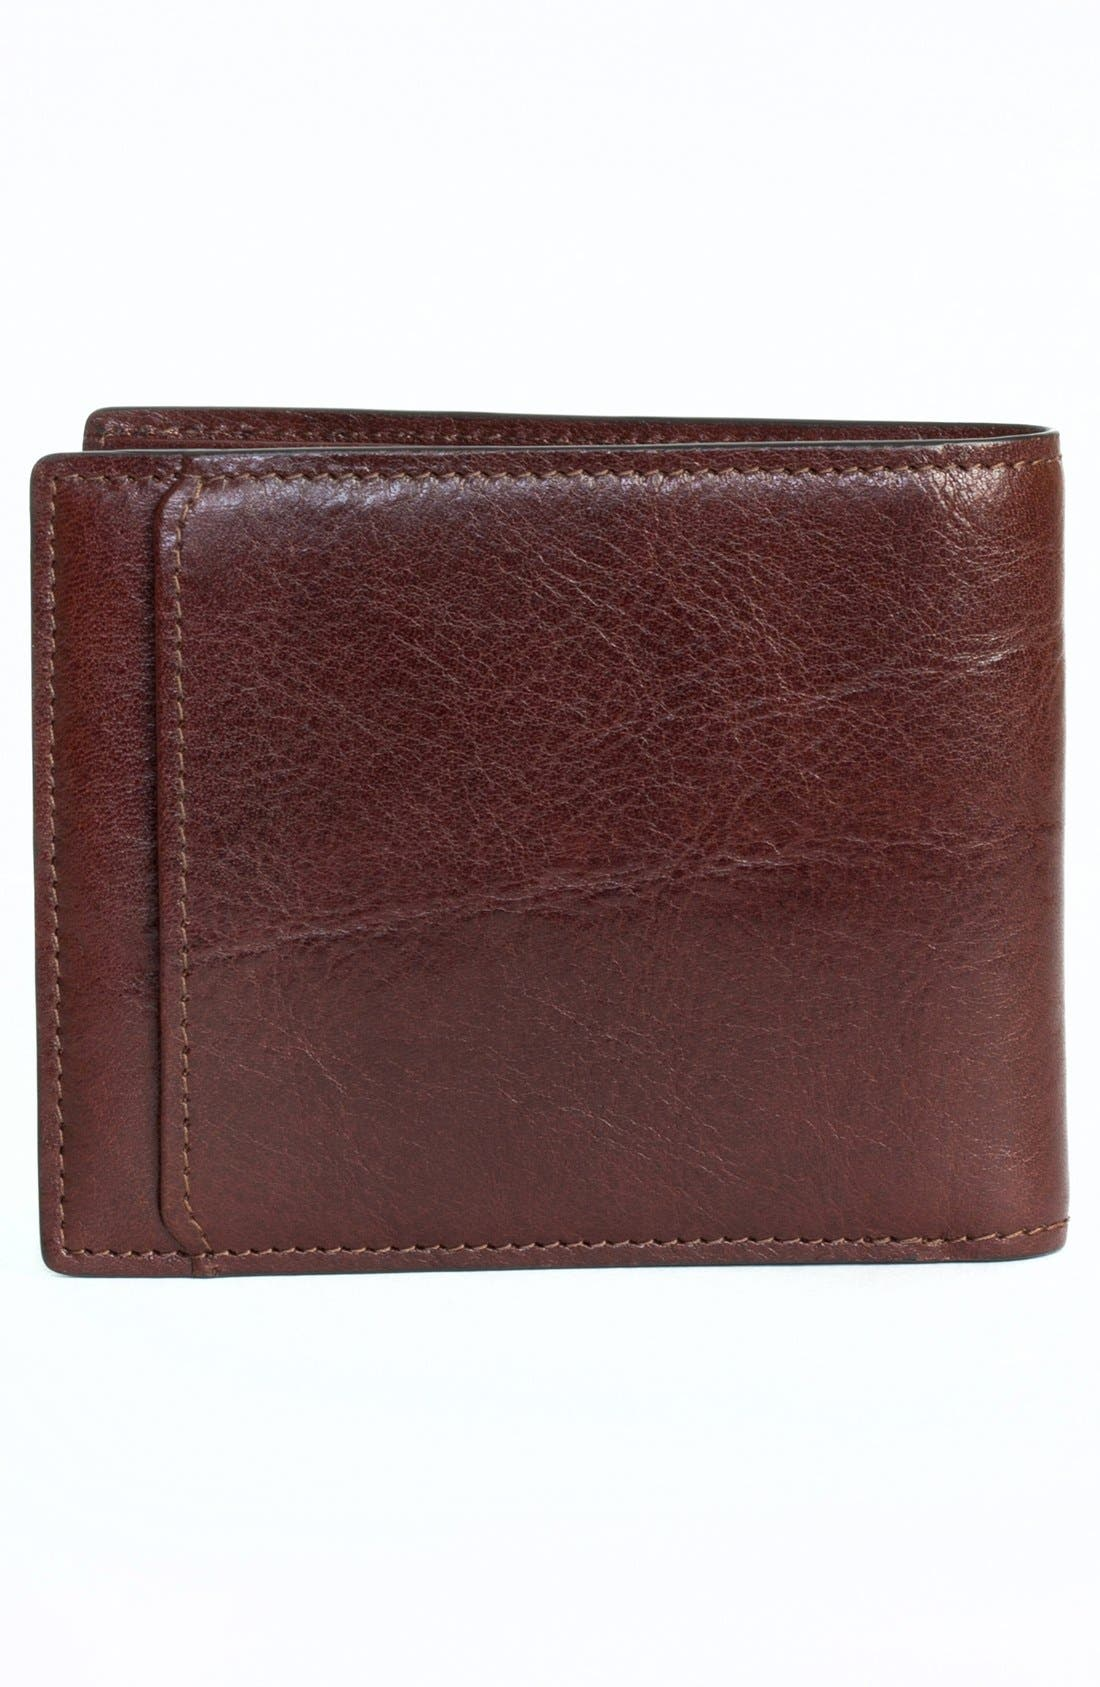 'Becker' Leather Wallet,                             Alternate thumbnail 4, color,                             Whiskey